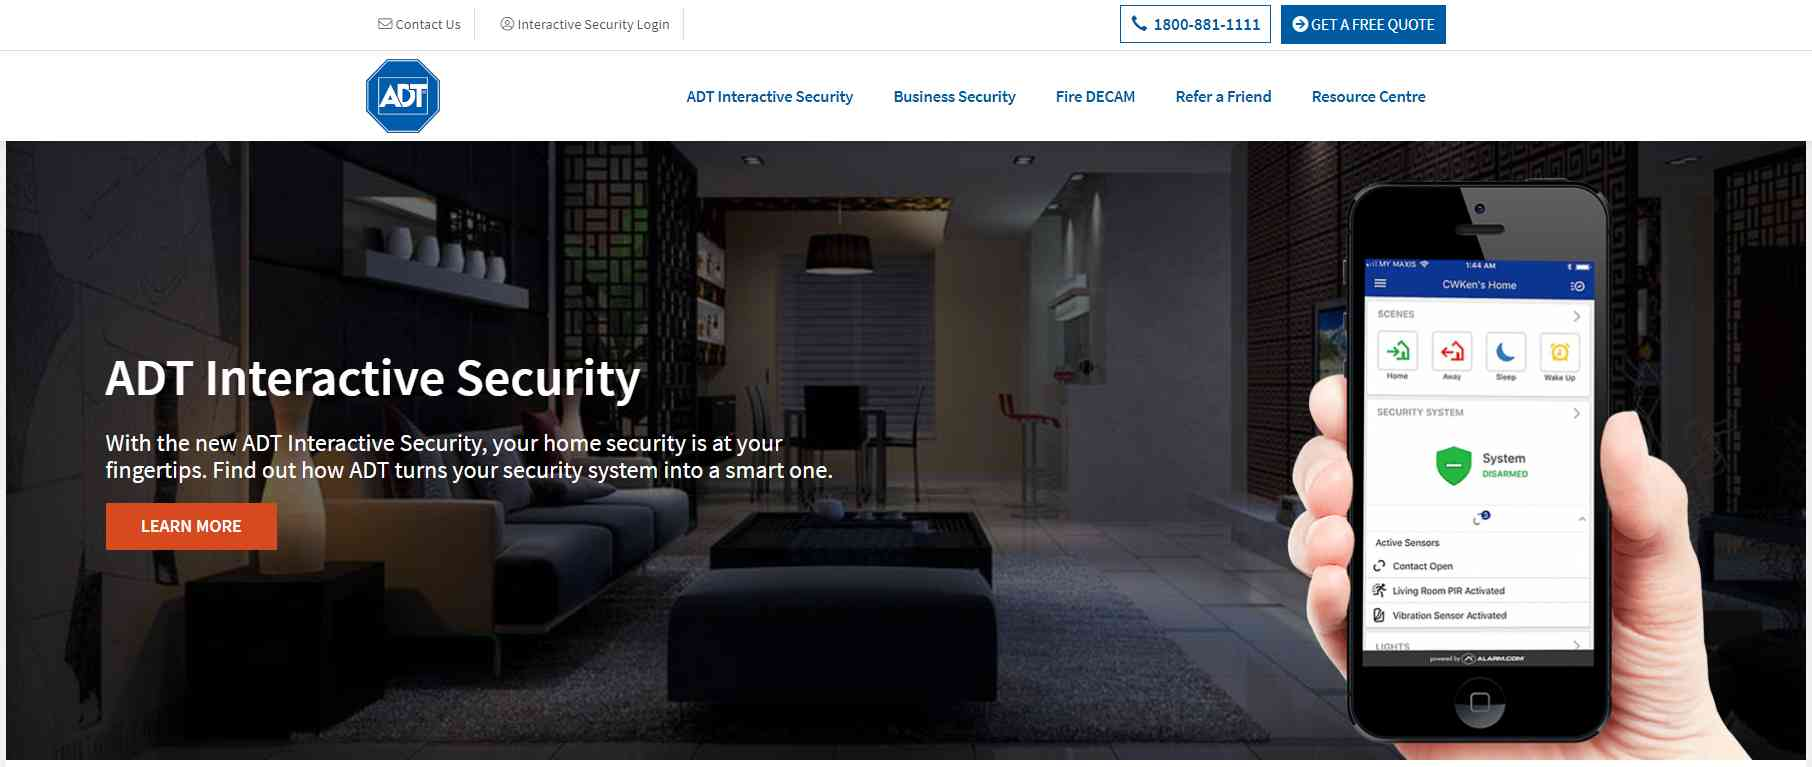 adt Top Home Security Systems in Singapore